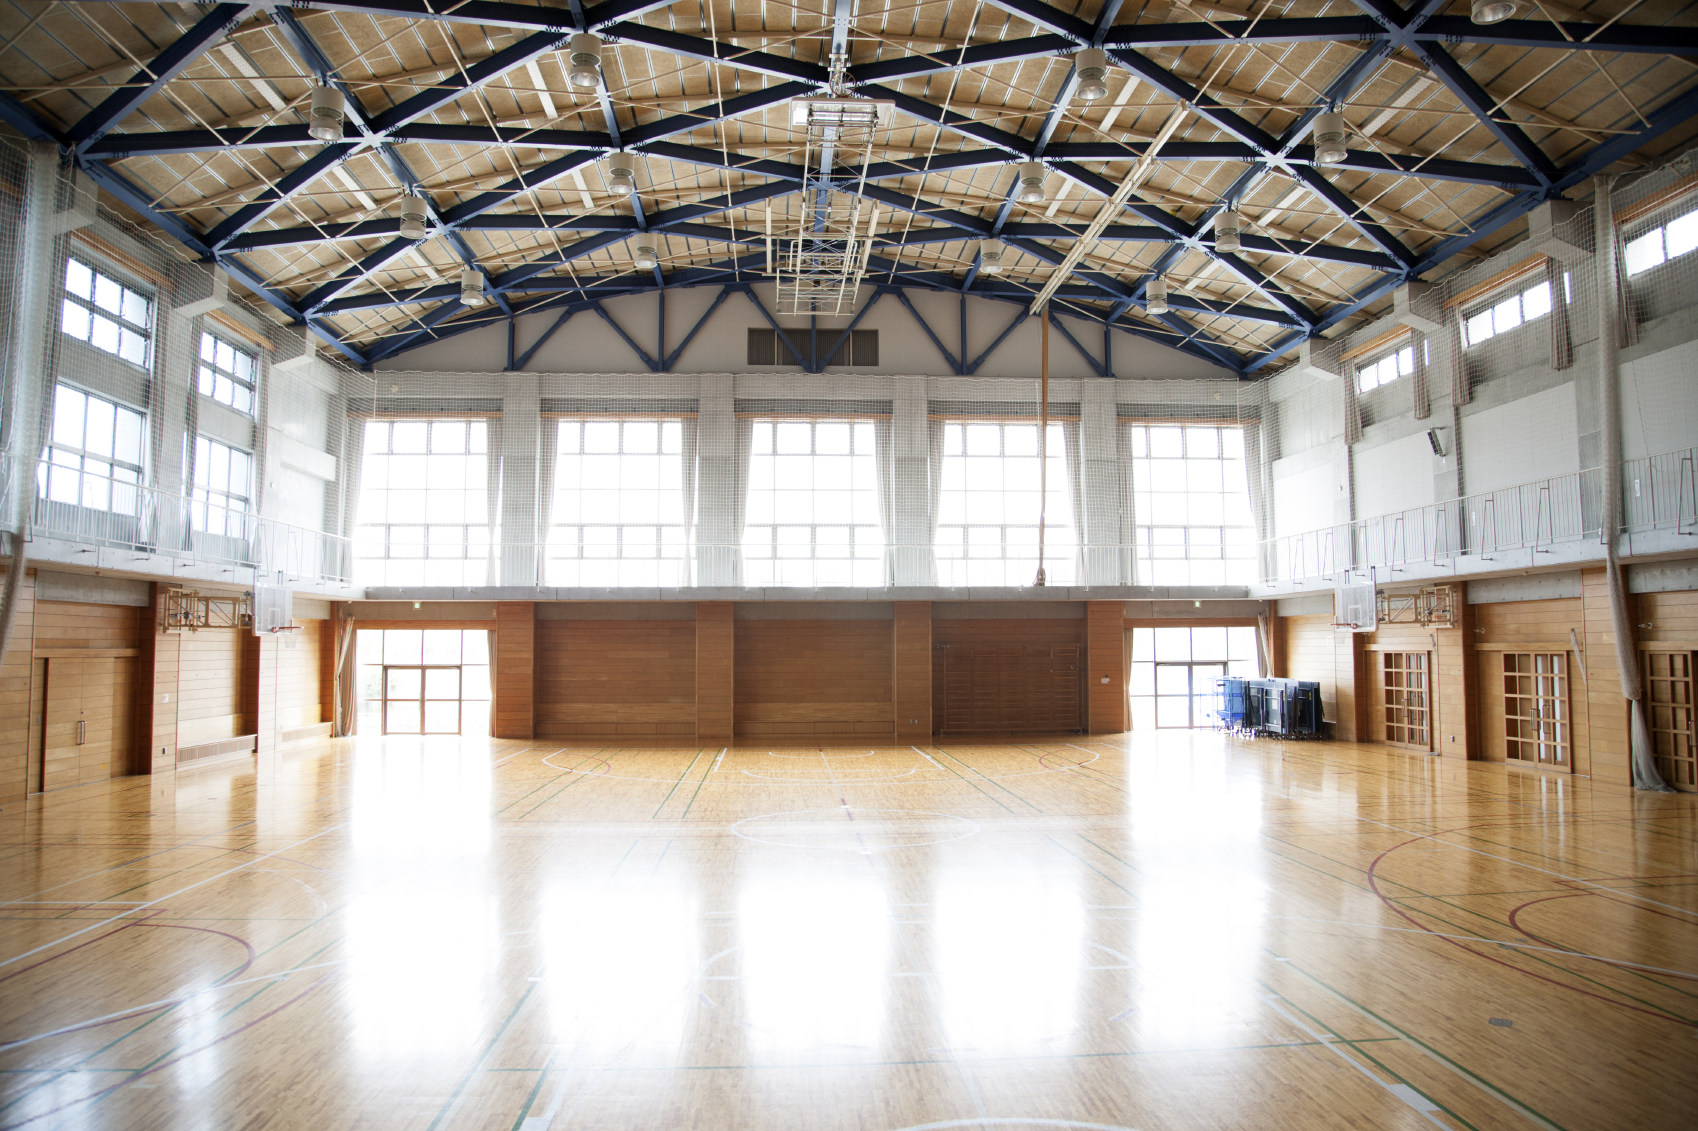 LED lighting for sports halls